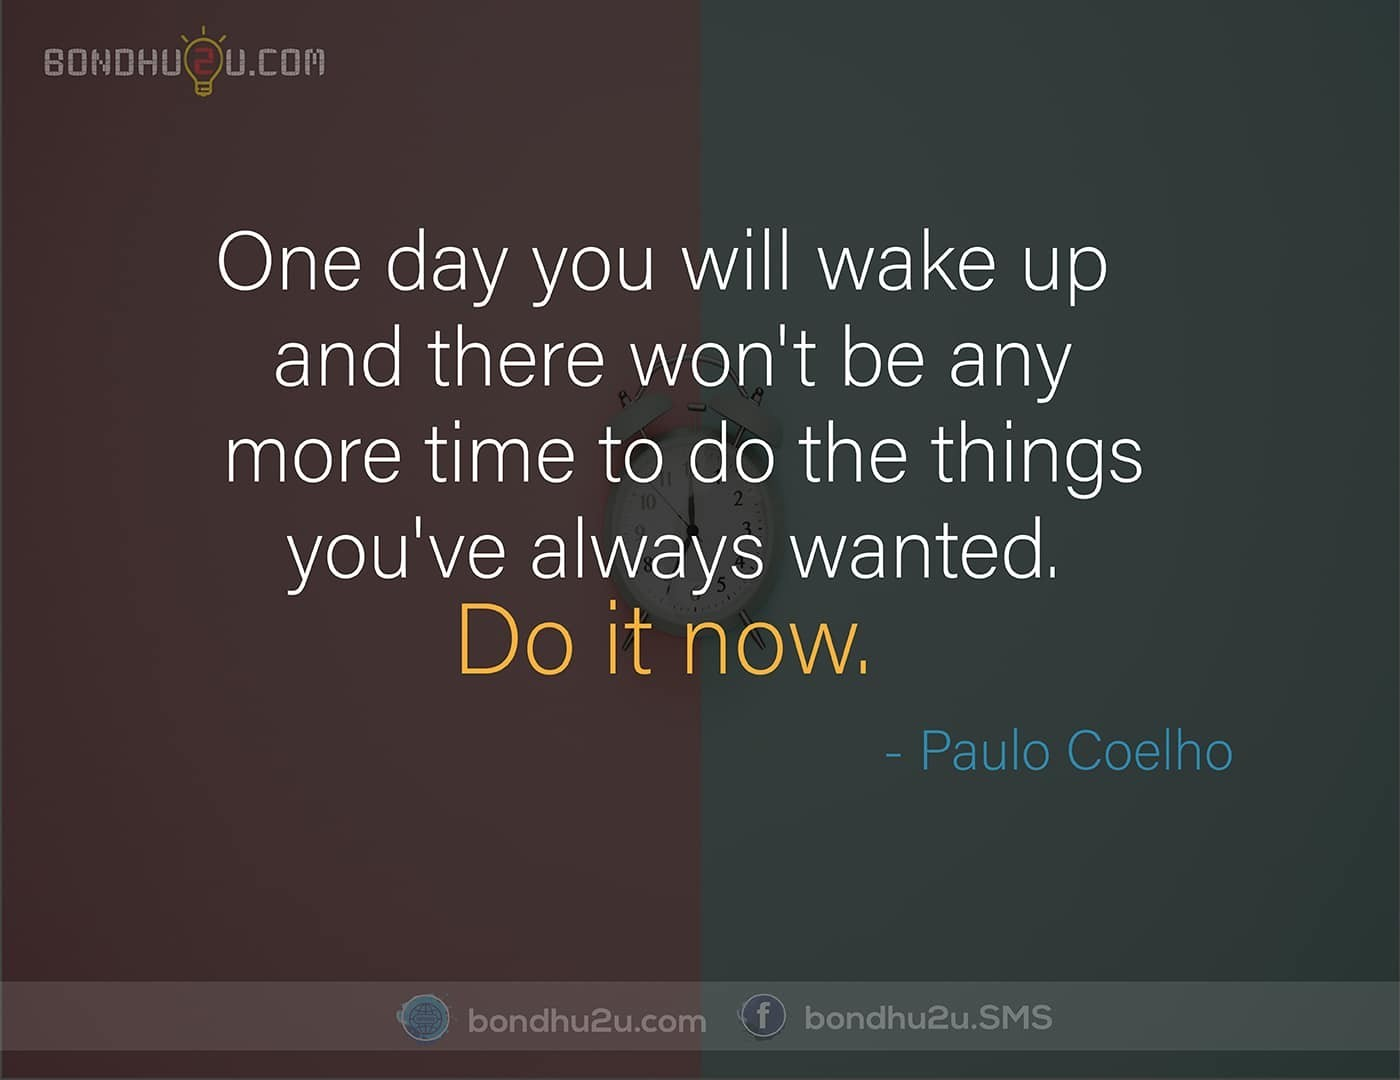 one day you will wakeup